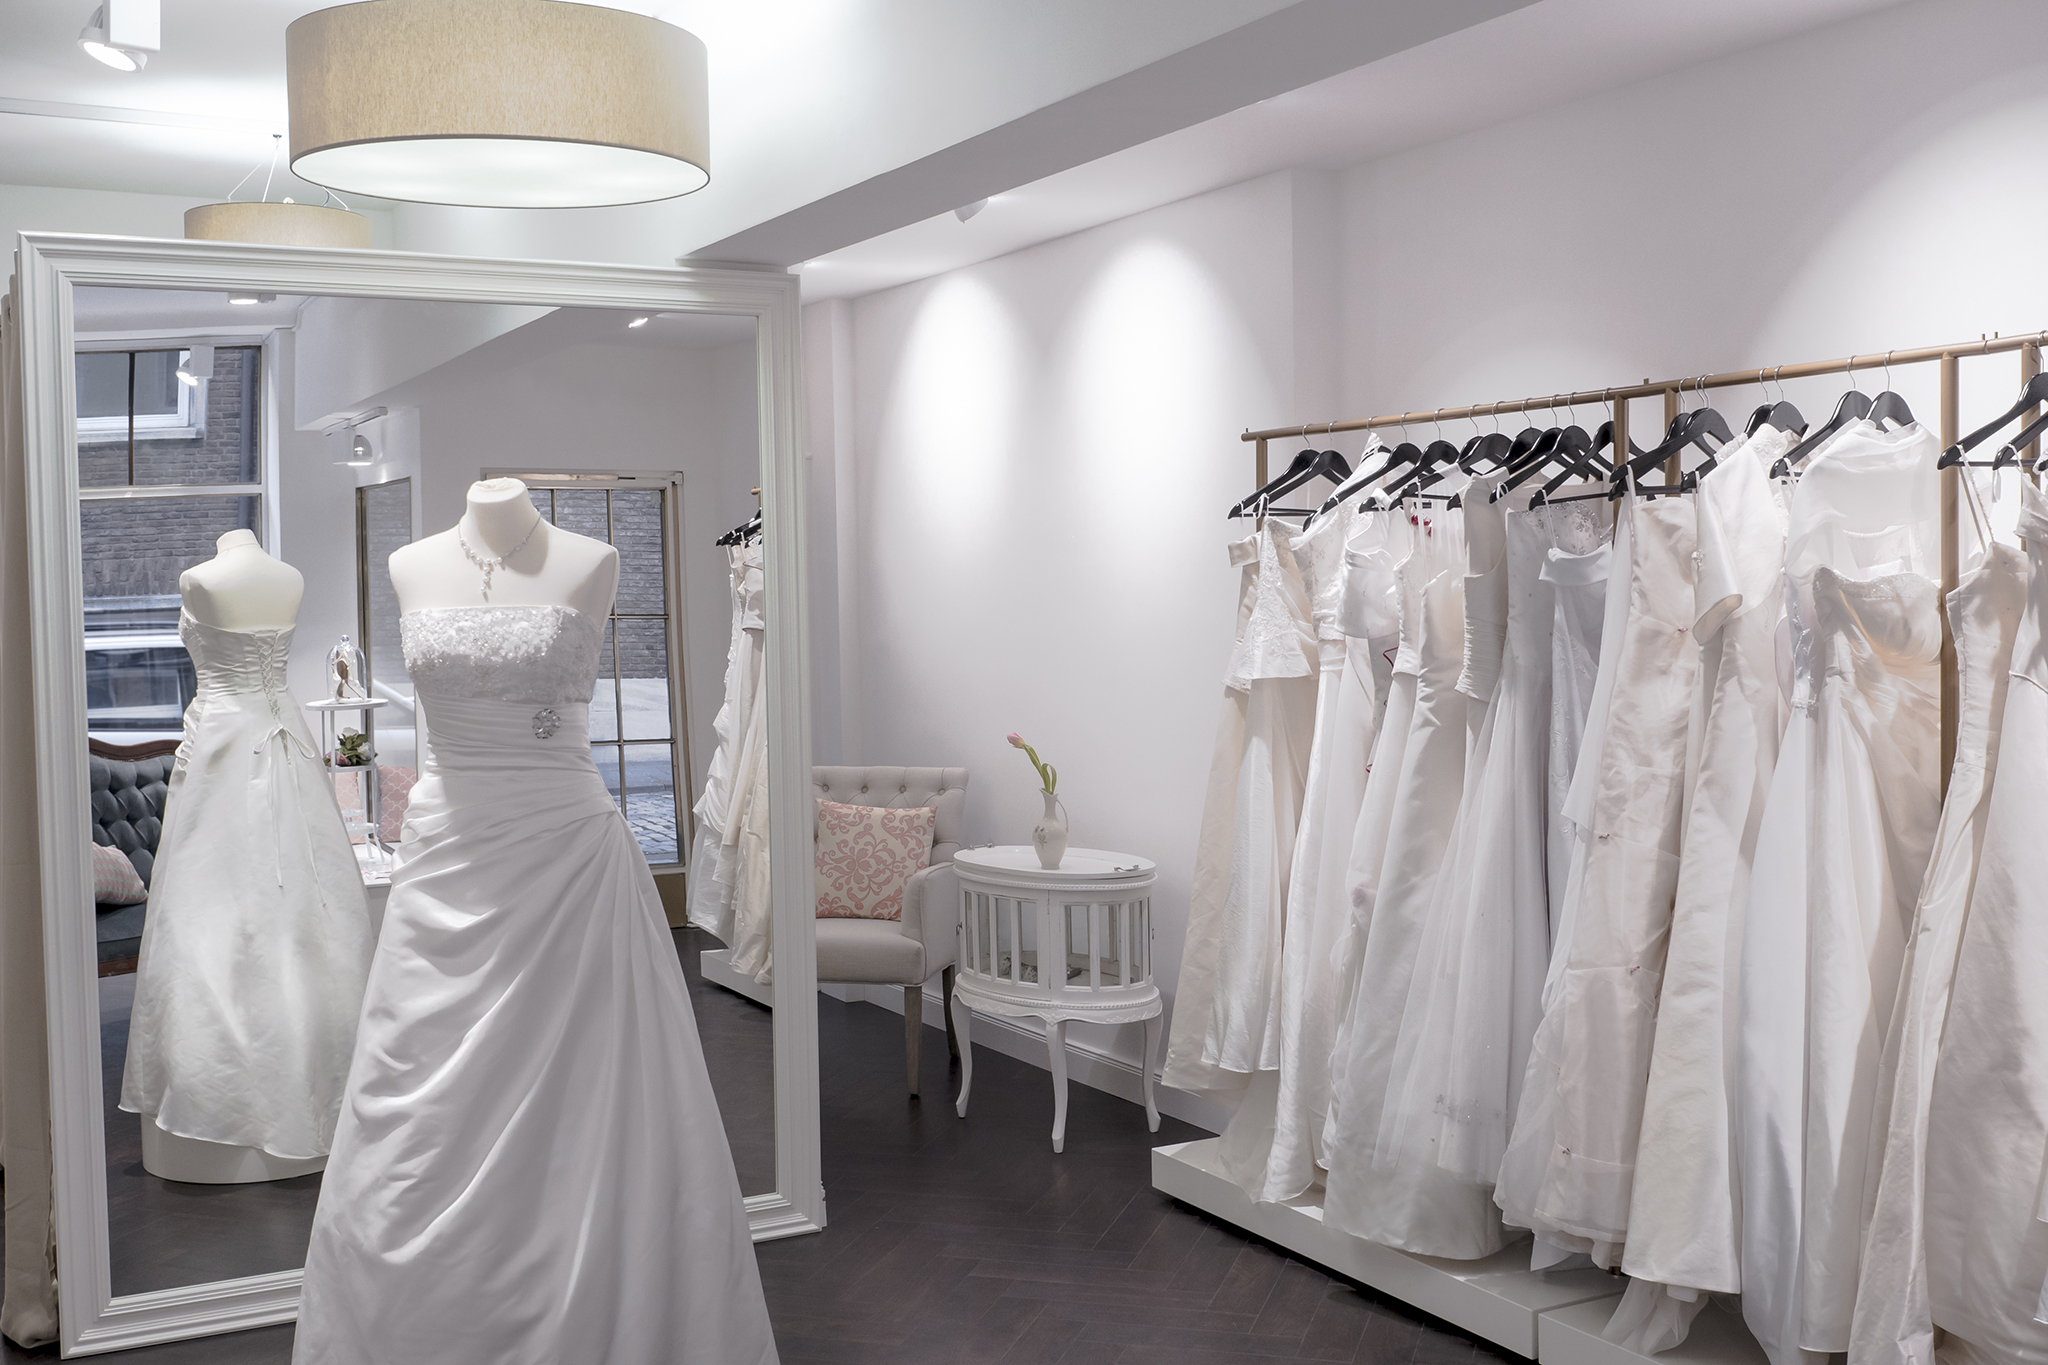 Best bridal shops in nyc including lovely bride and kleinfeld for Places to buy wedding dresses near me